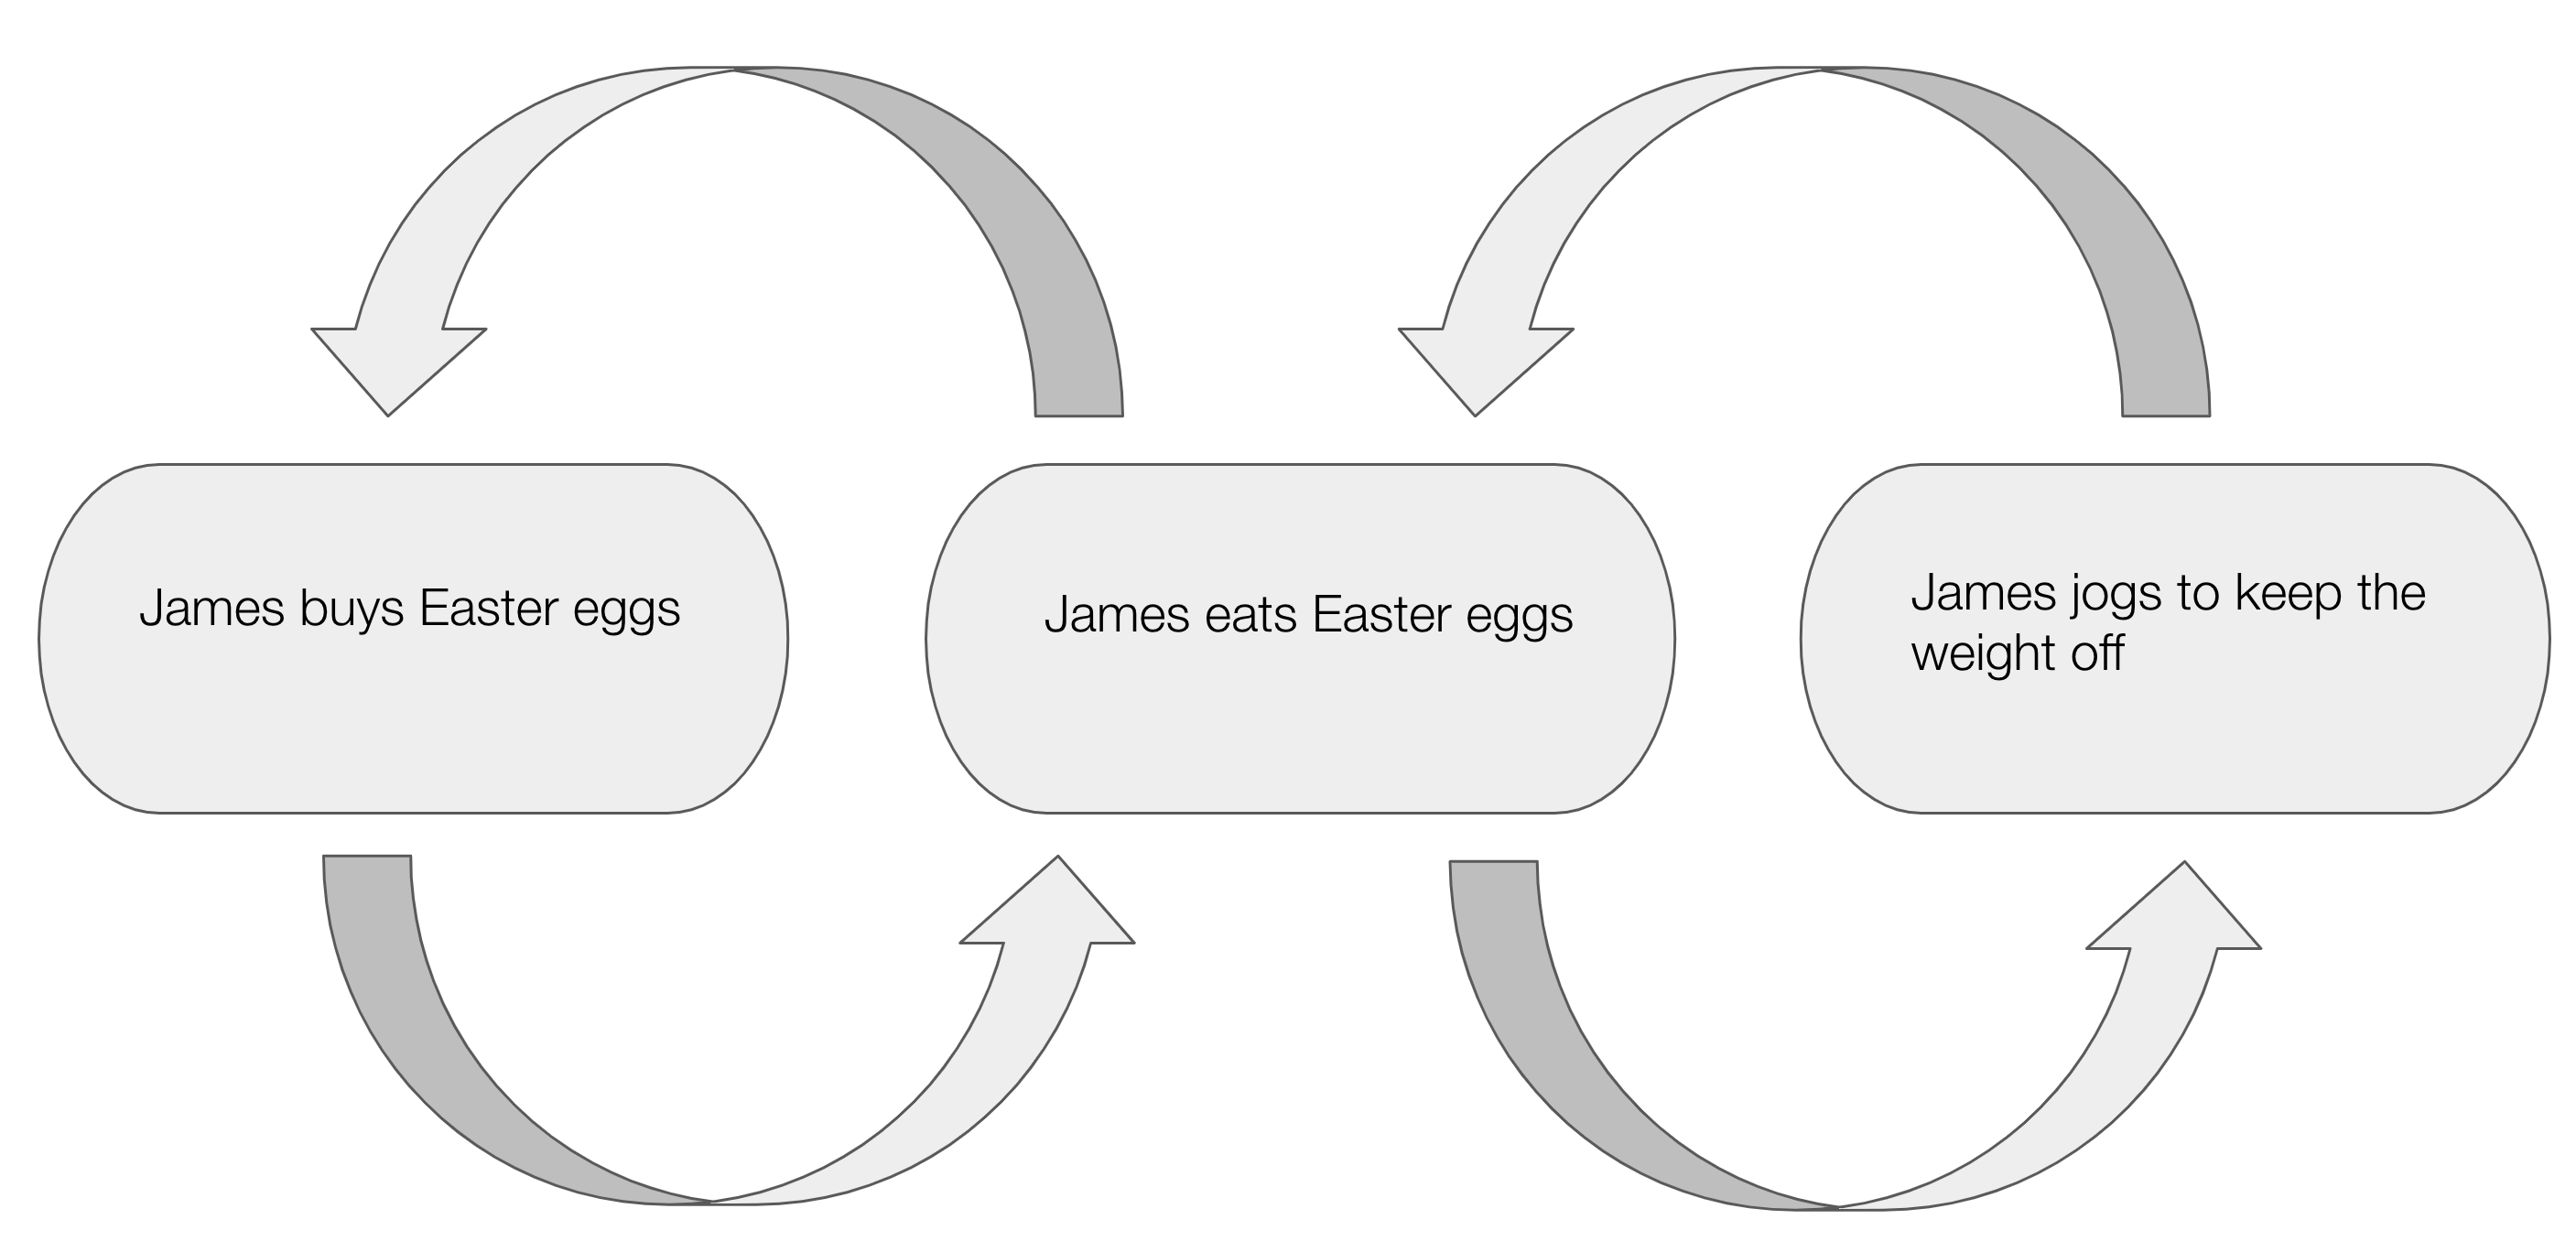 James Hostford causal loop diagram